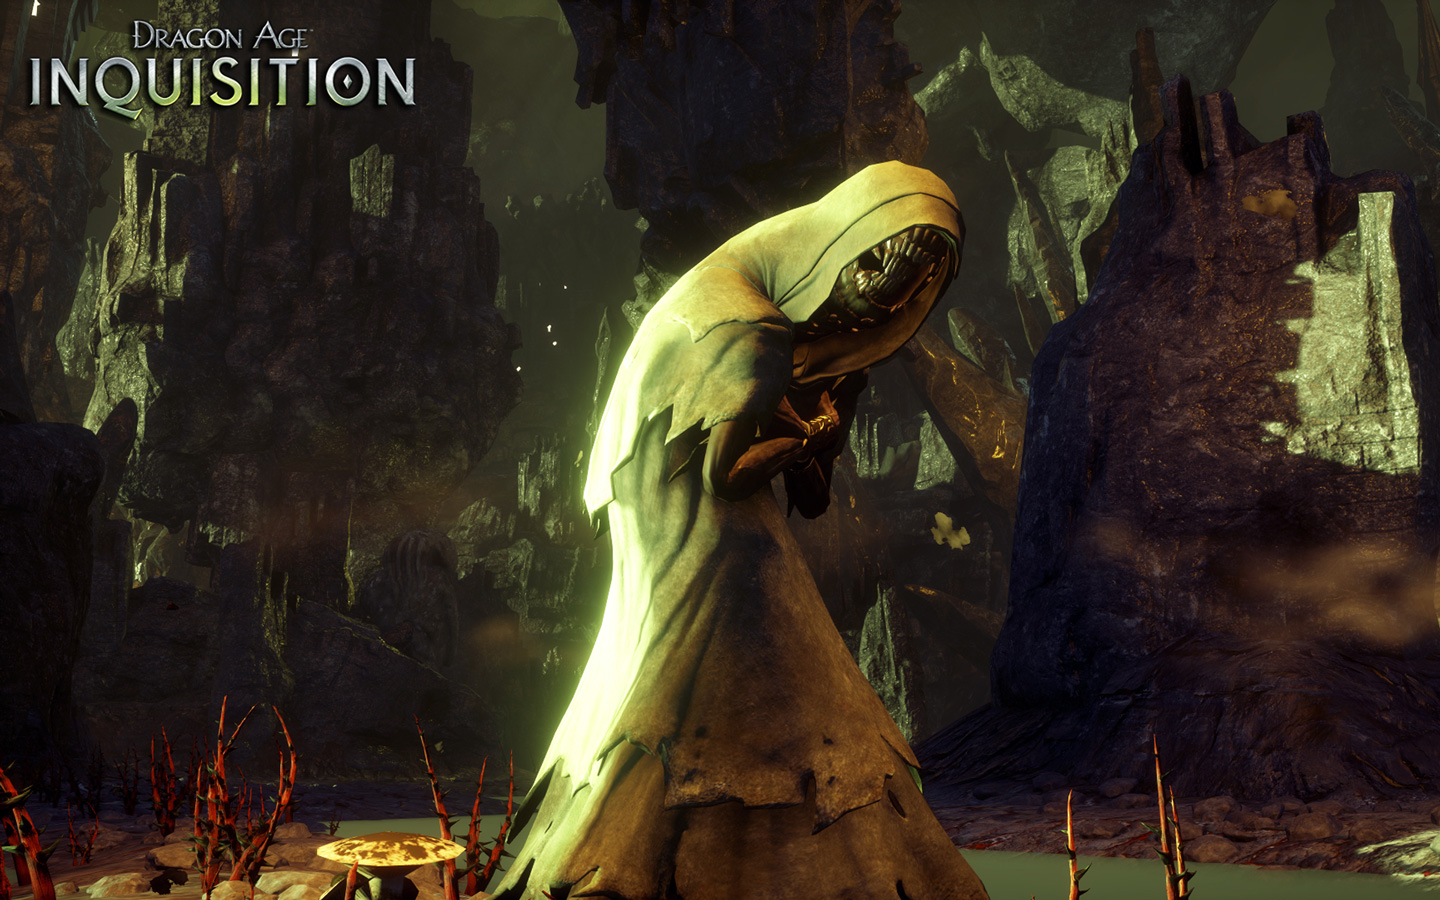 Free Dragon Age: Inquisition Wallpaper in 1440x900